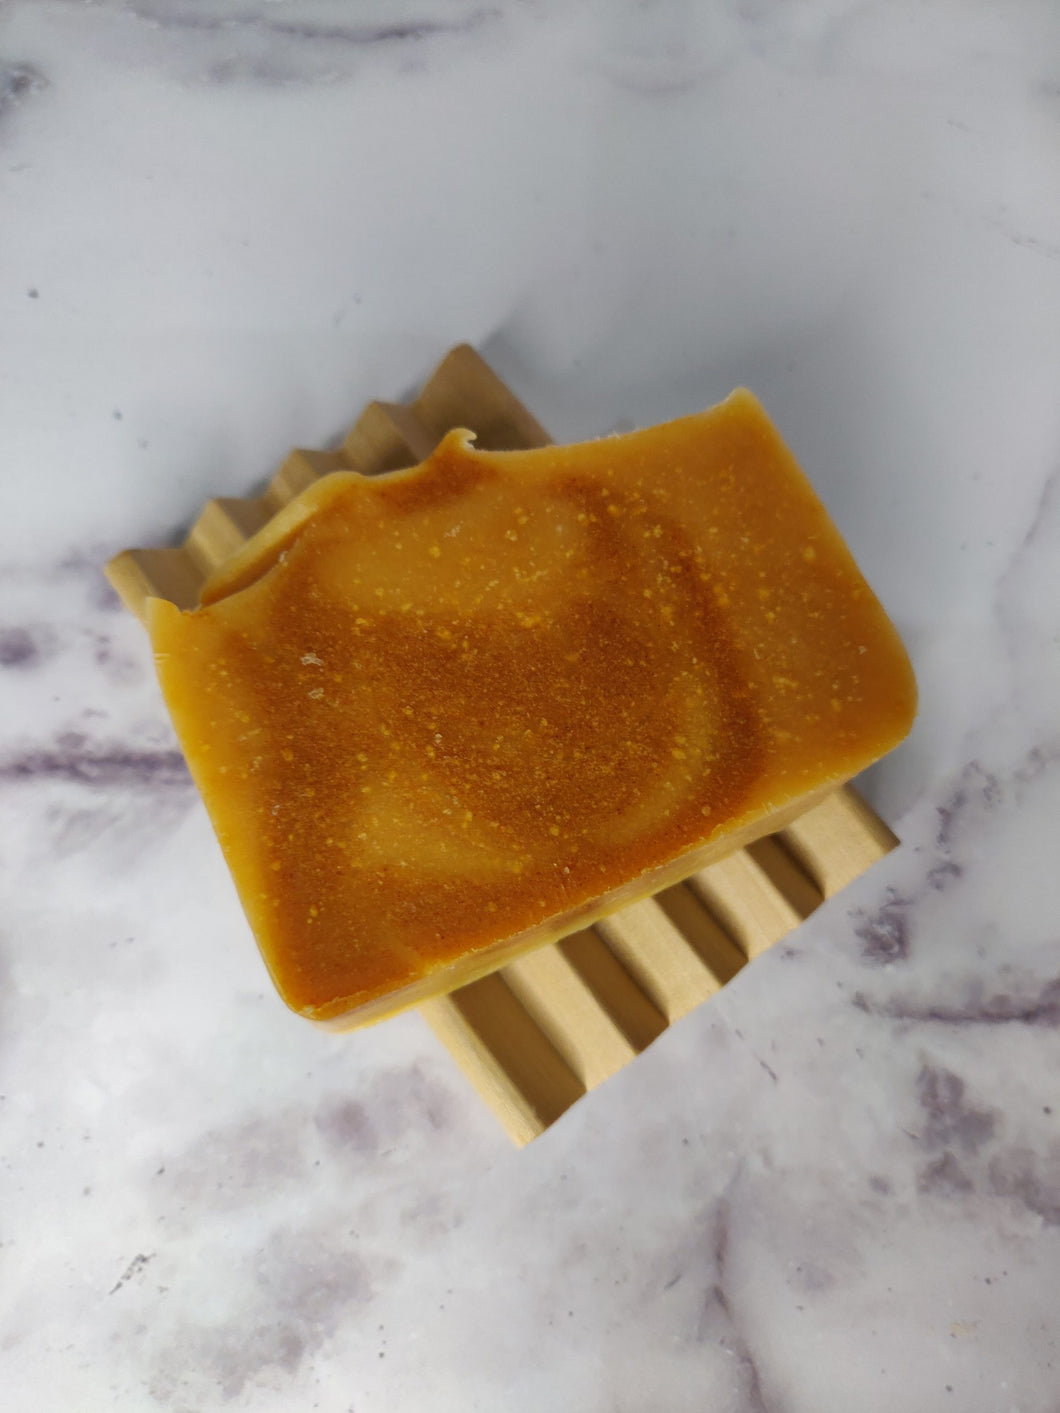 Get your skin glowing, with the Coconut, Turmeric and Honey soap. It's loaded with Coconut and Turmeric herbal powder, and other active skin-loving ingredients that are known to remove impurities, reduce inflammation, prevent acne, and balance the pH level of your skin.